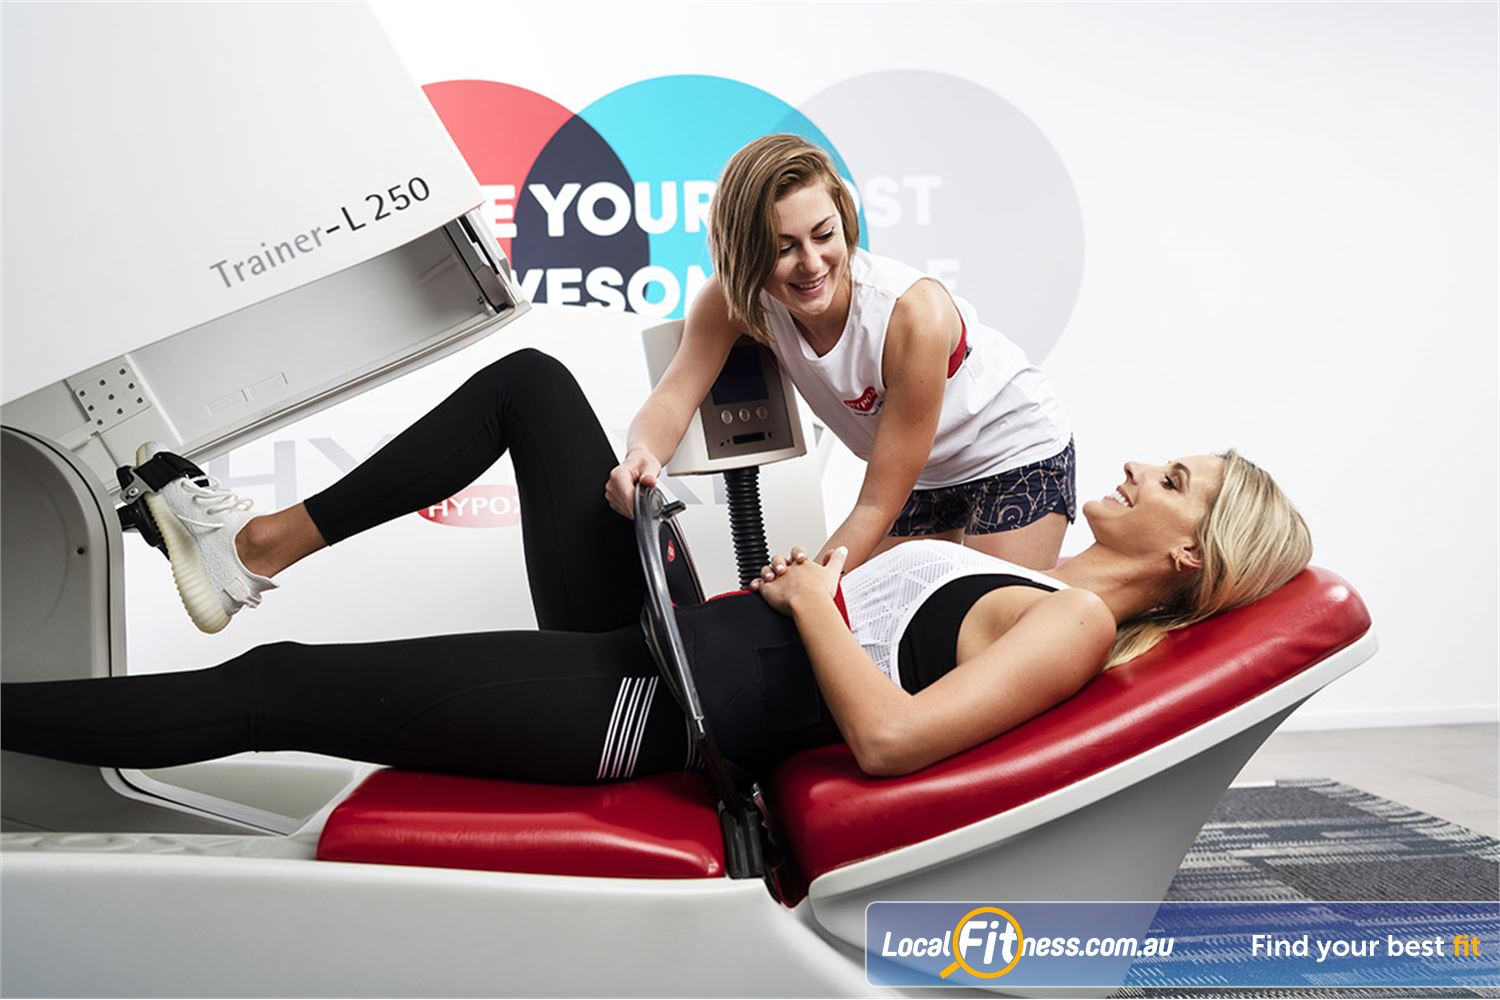 HYPOXI Weight Loss Port Melbourne For women HYPOXI is great for Port Melbourne cellulite reduction.